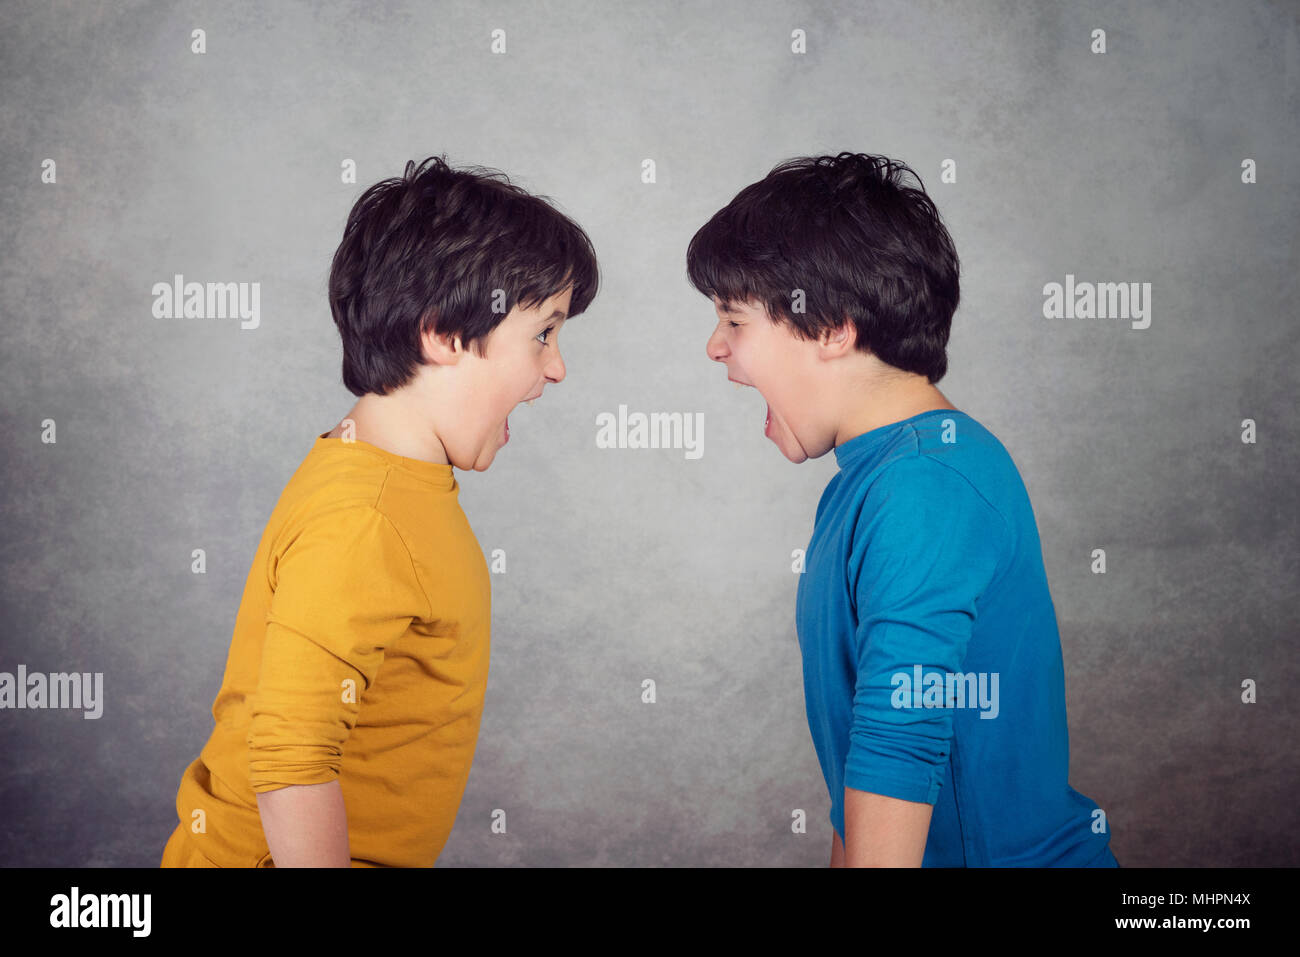 Angry children shouting over on gray background Angry children shouting over on gray background - Stock Image